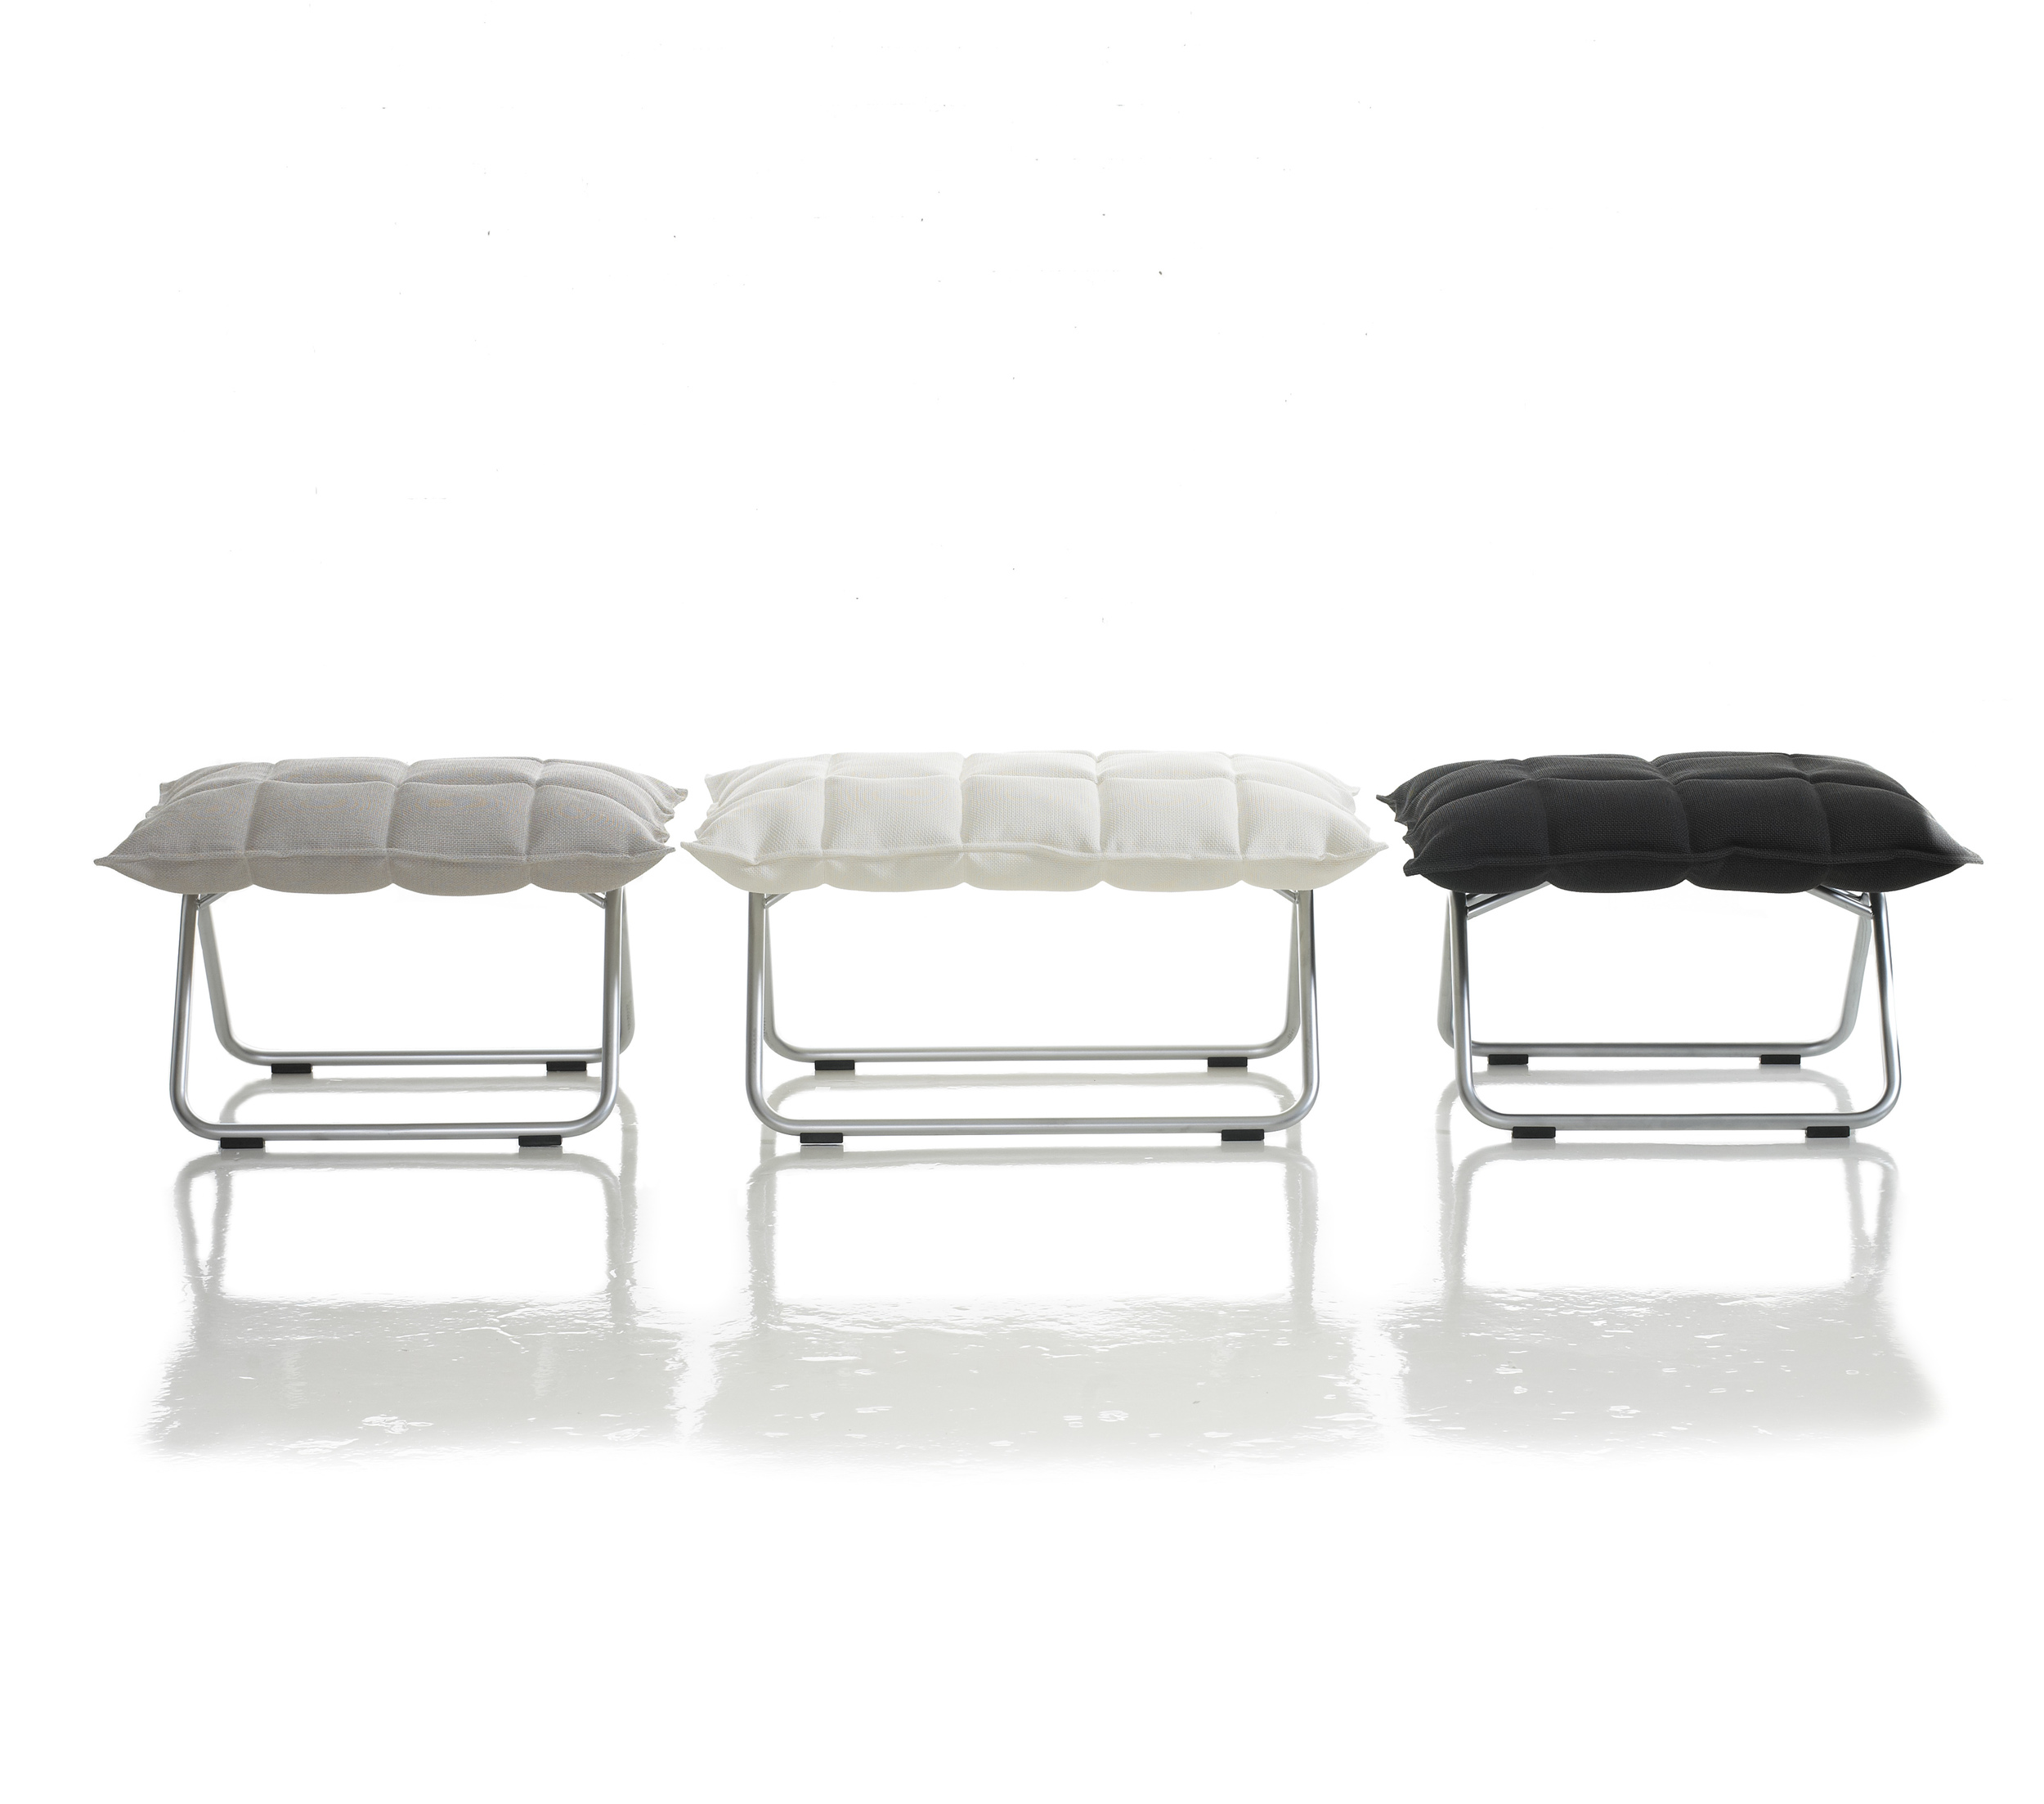 46013 Narrow k Ottomans and 46011 Wide k Ottoman, matt-chromed tubular frame